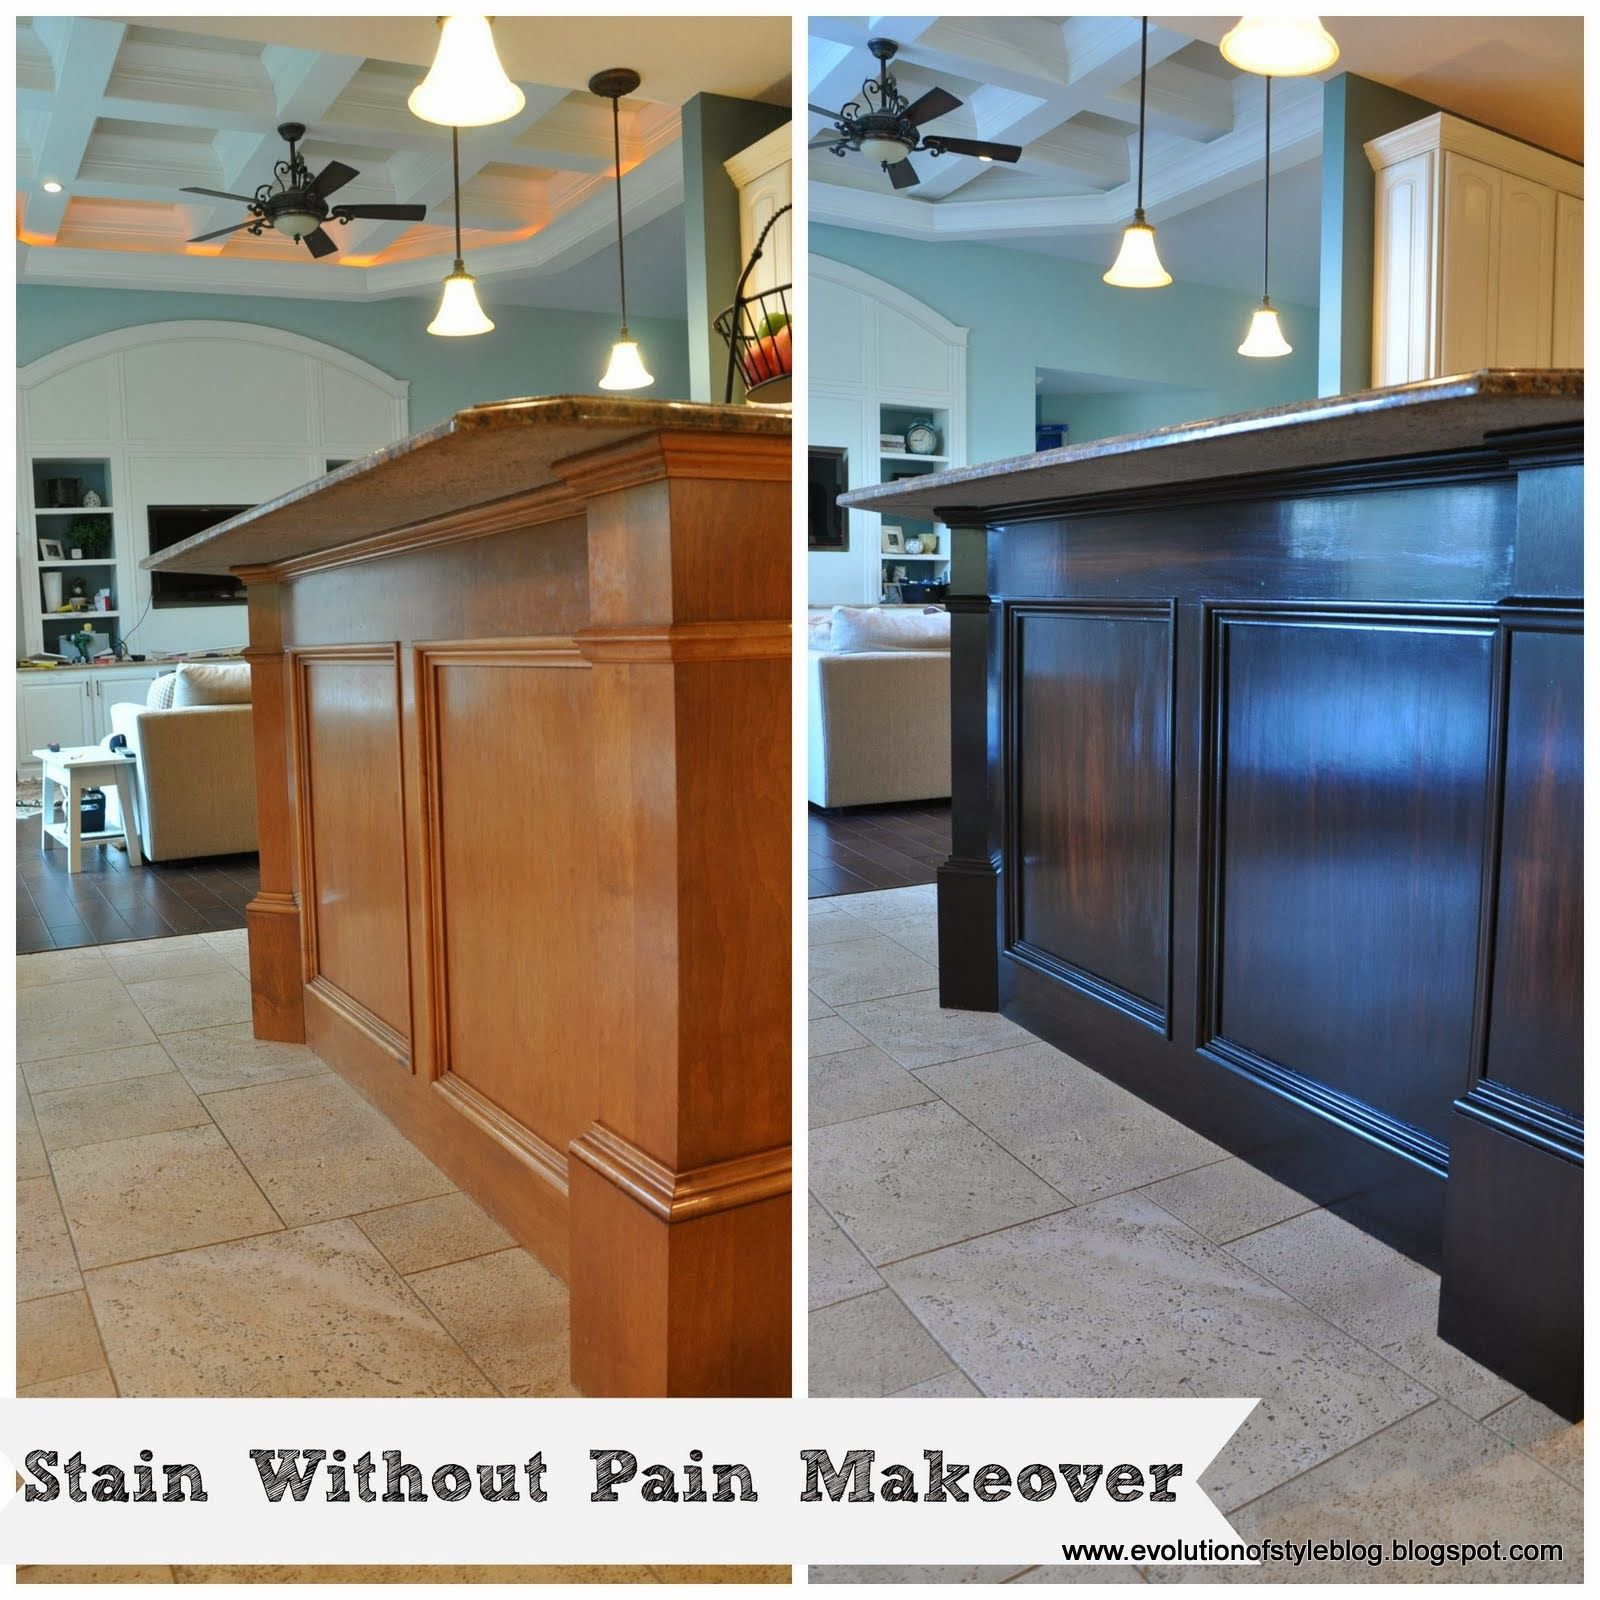 Kitchen Cabinet Stain Ideas: Evolution Of Style: How To Stain Without Pain: The